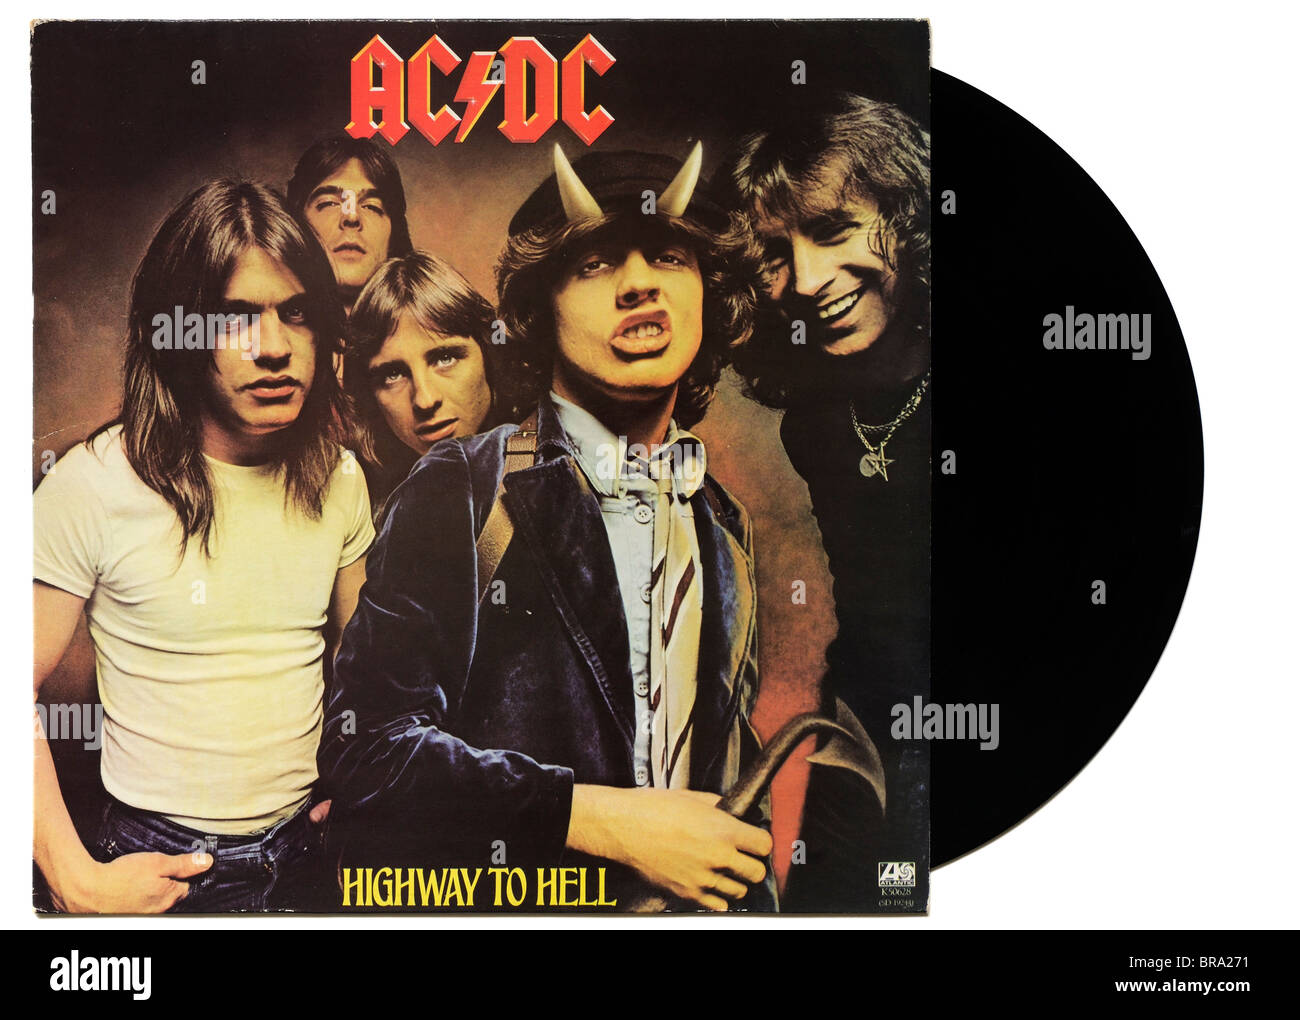 AC/DC Highway to Hell album Photo Stock